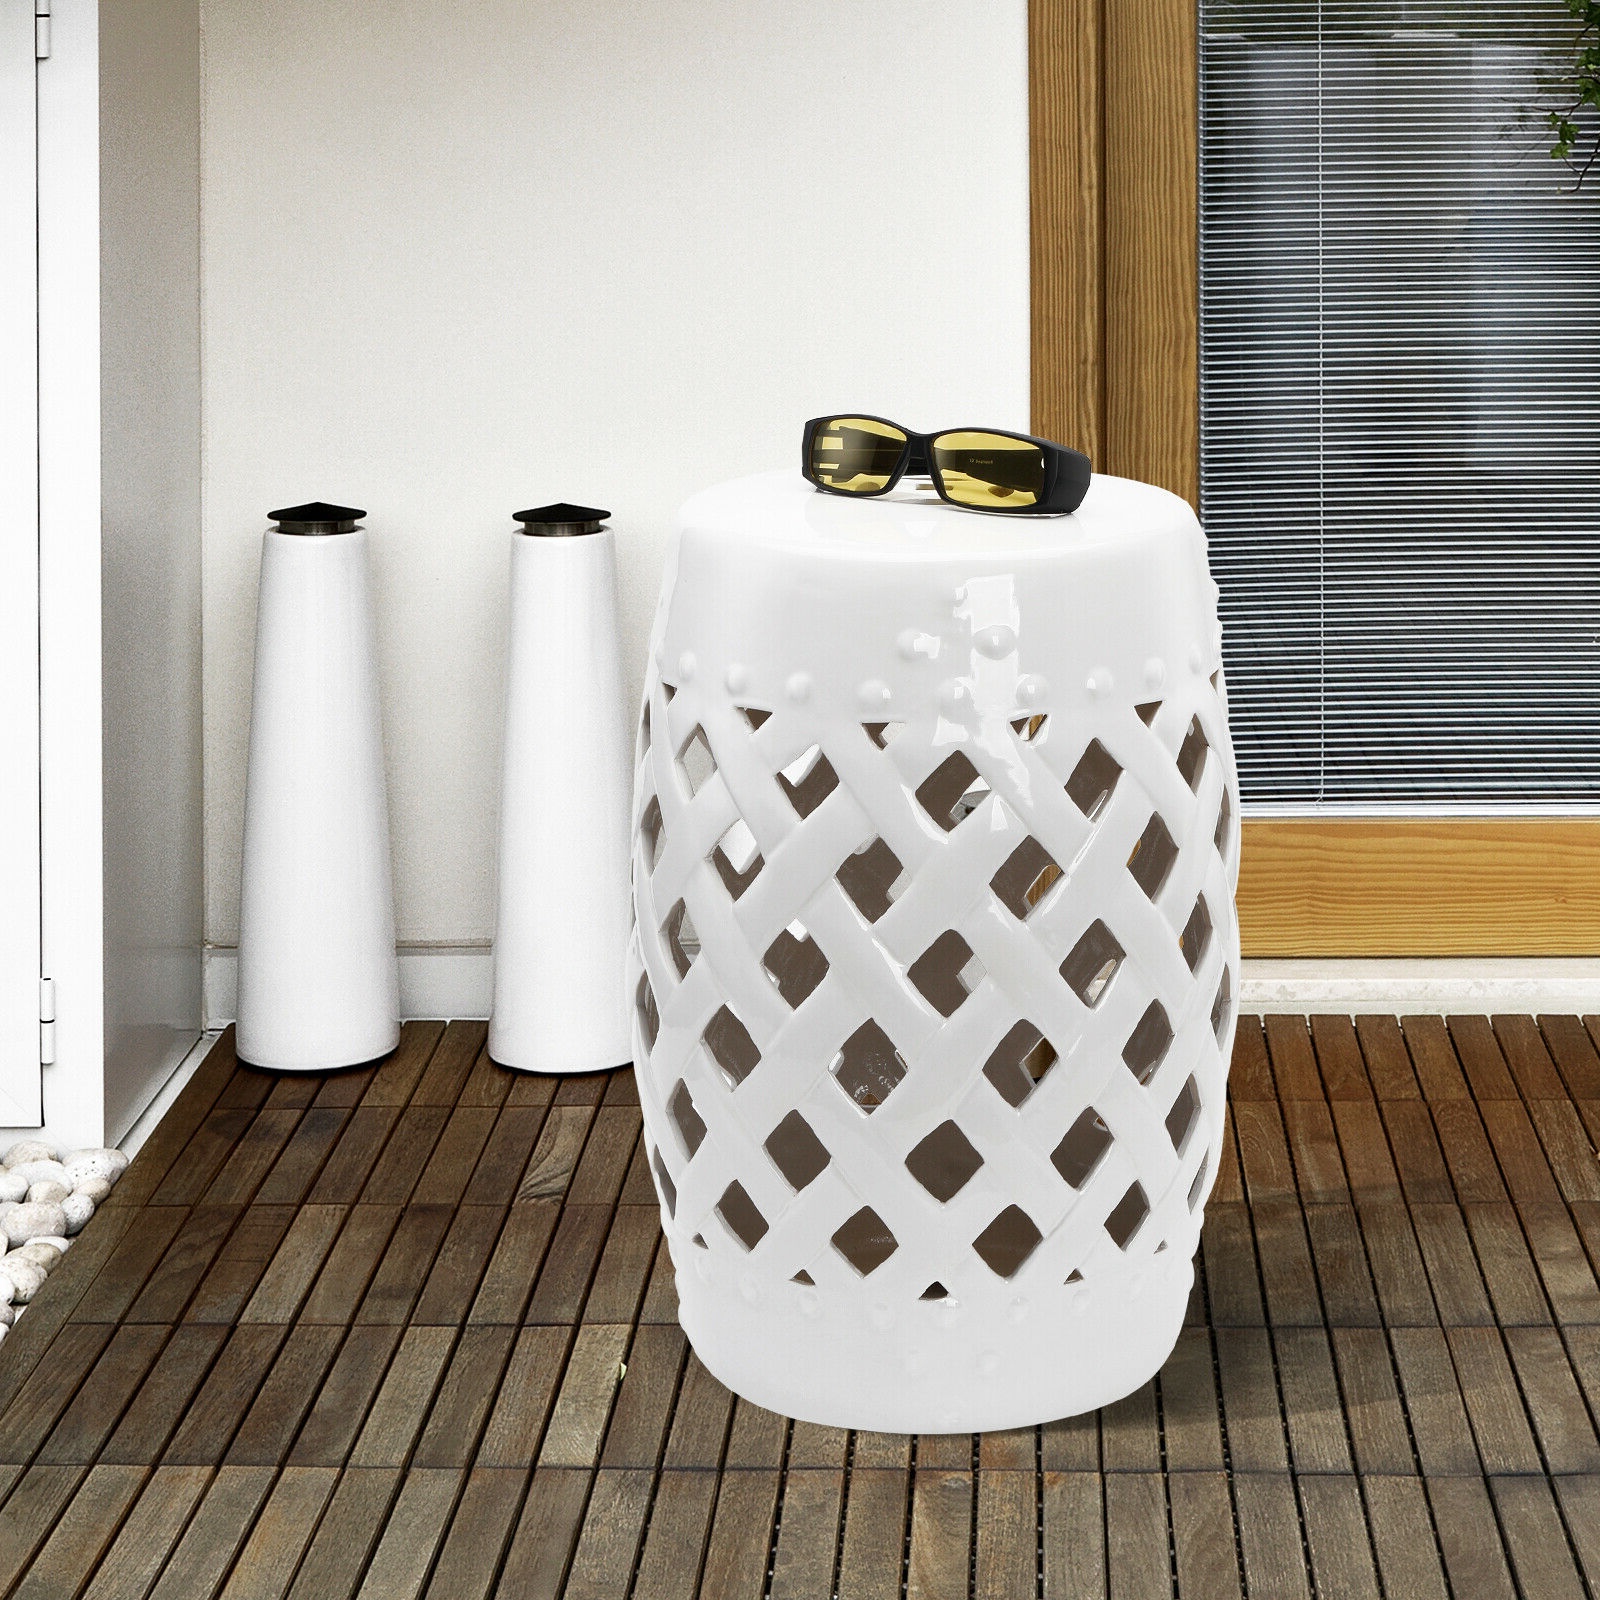 Standwood Metal Garden Stools Intended For Most Up To Date Outsunny Modern Ceramic Lattice Garden Stool Accent Table Decorative White (View 8 of 30)